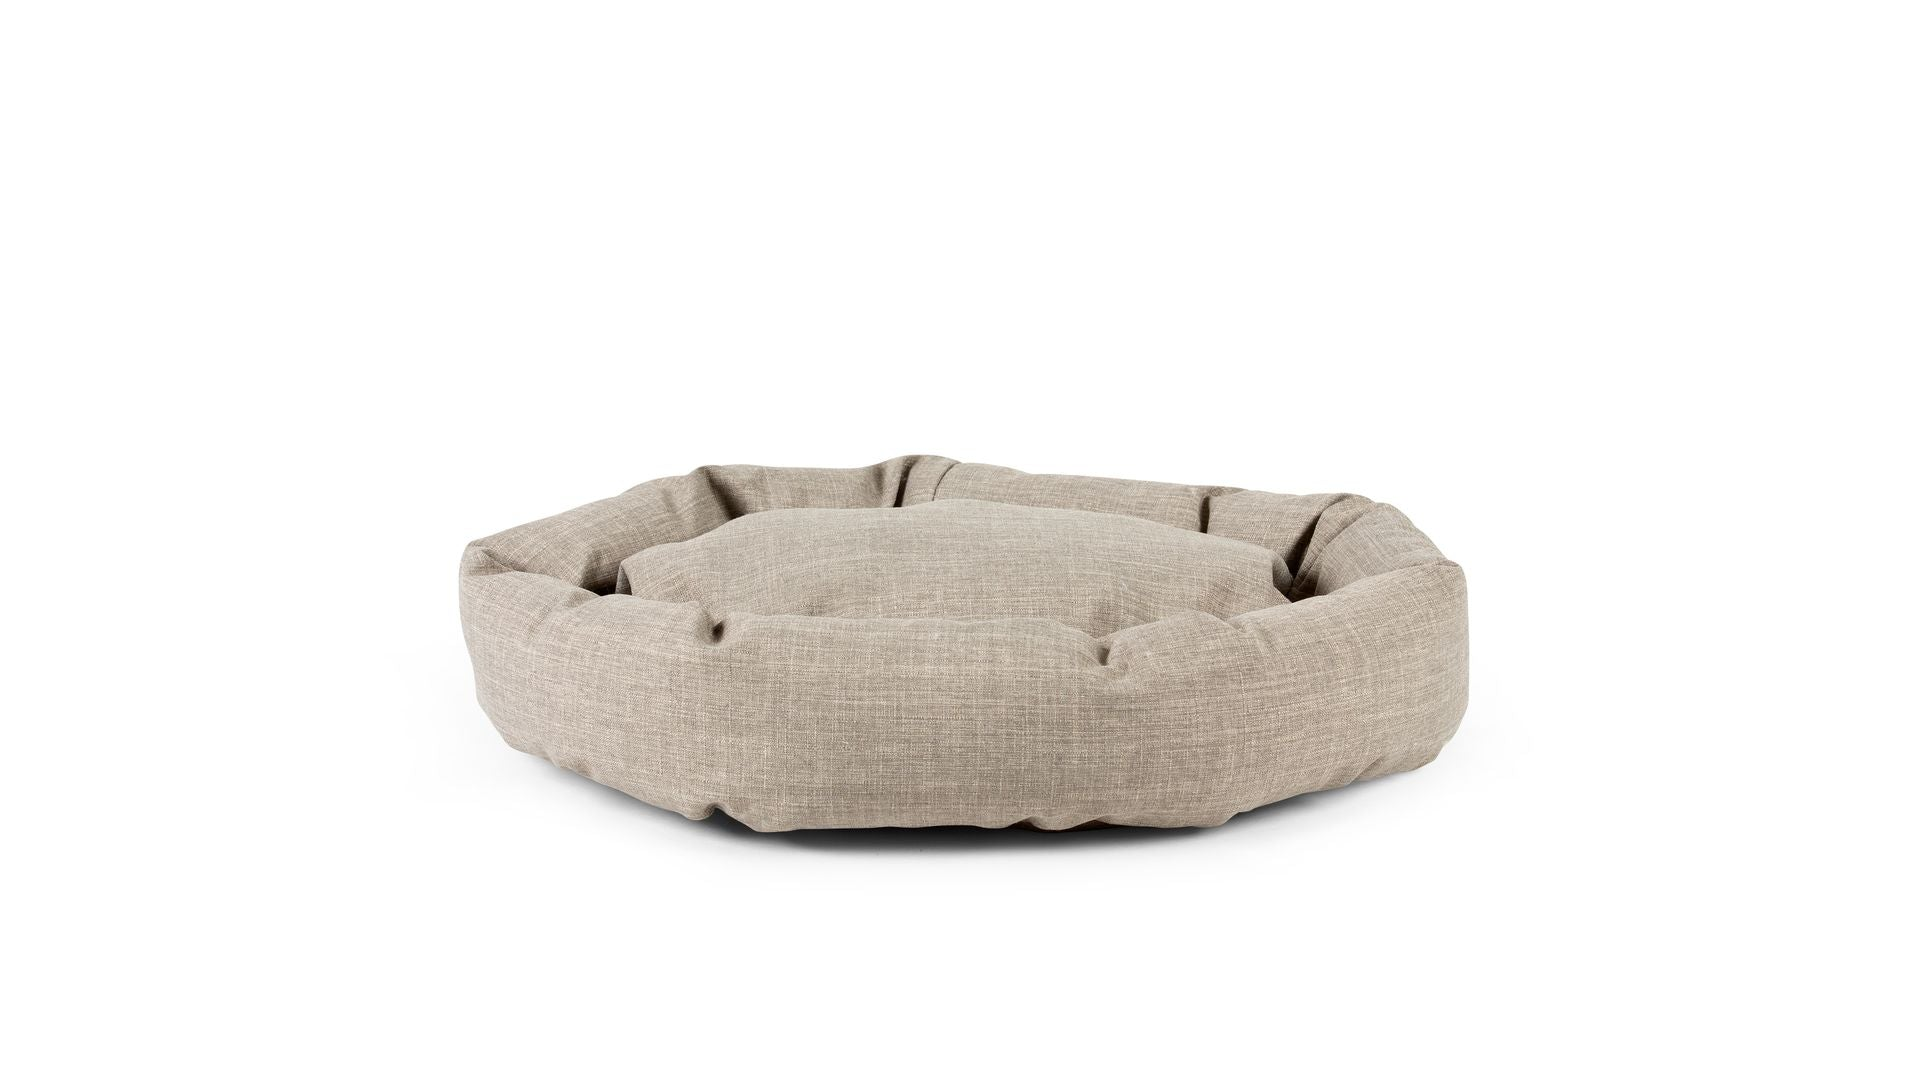 Oval Comfy Pet Bed